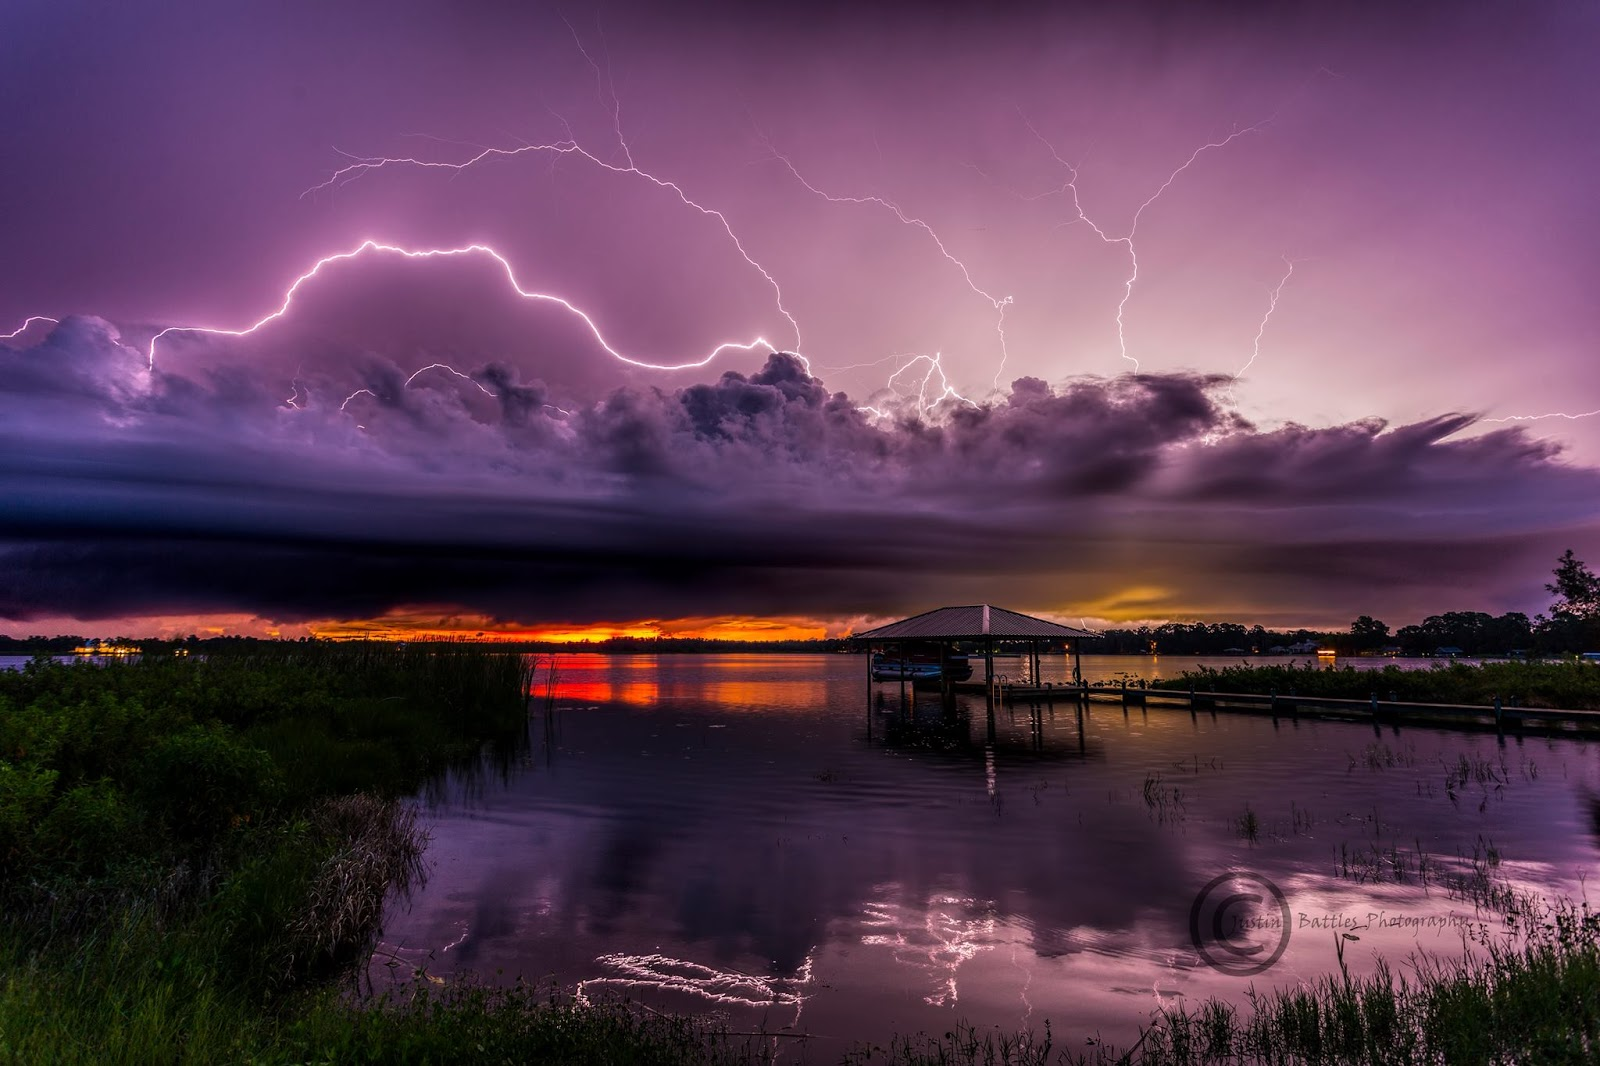 Sunset and lightning at Lake Charlotte in Sebring, Florida